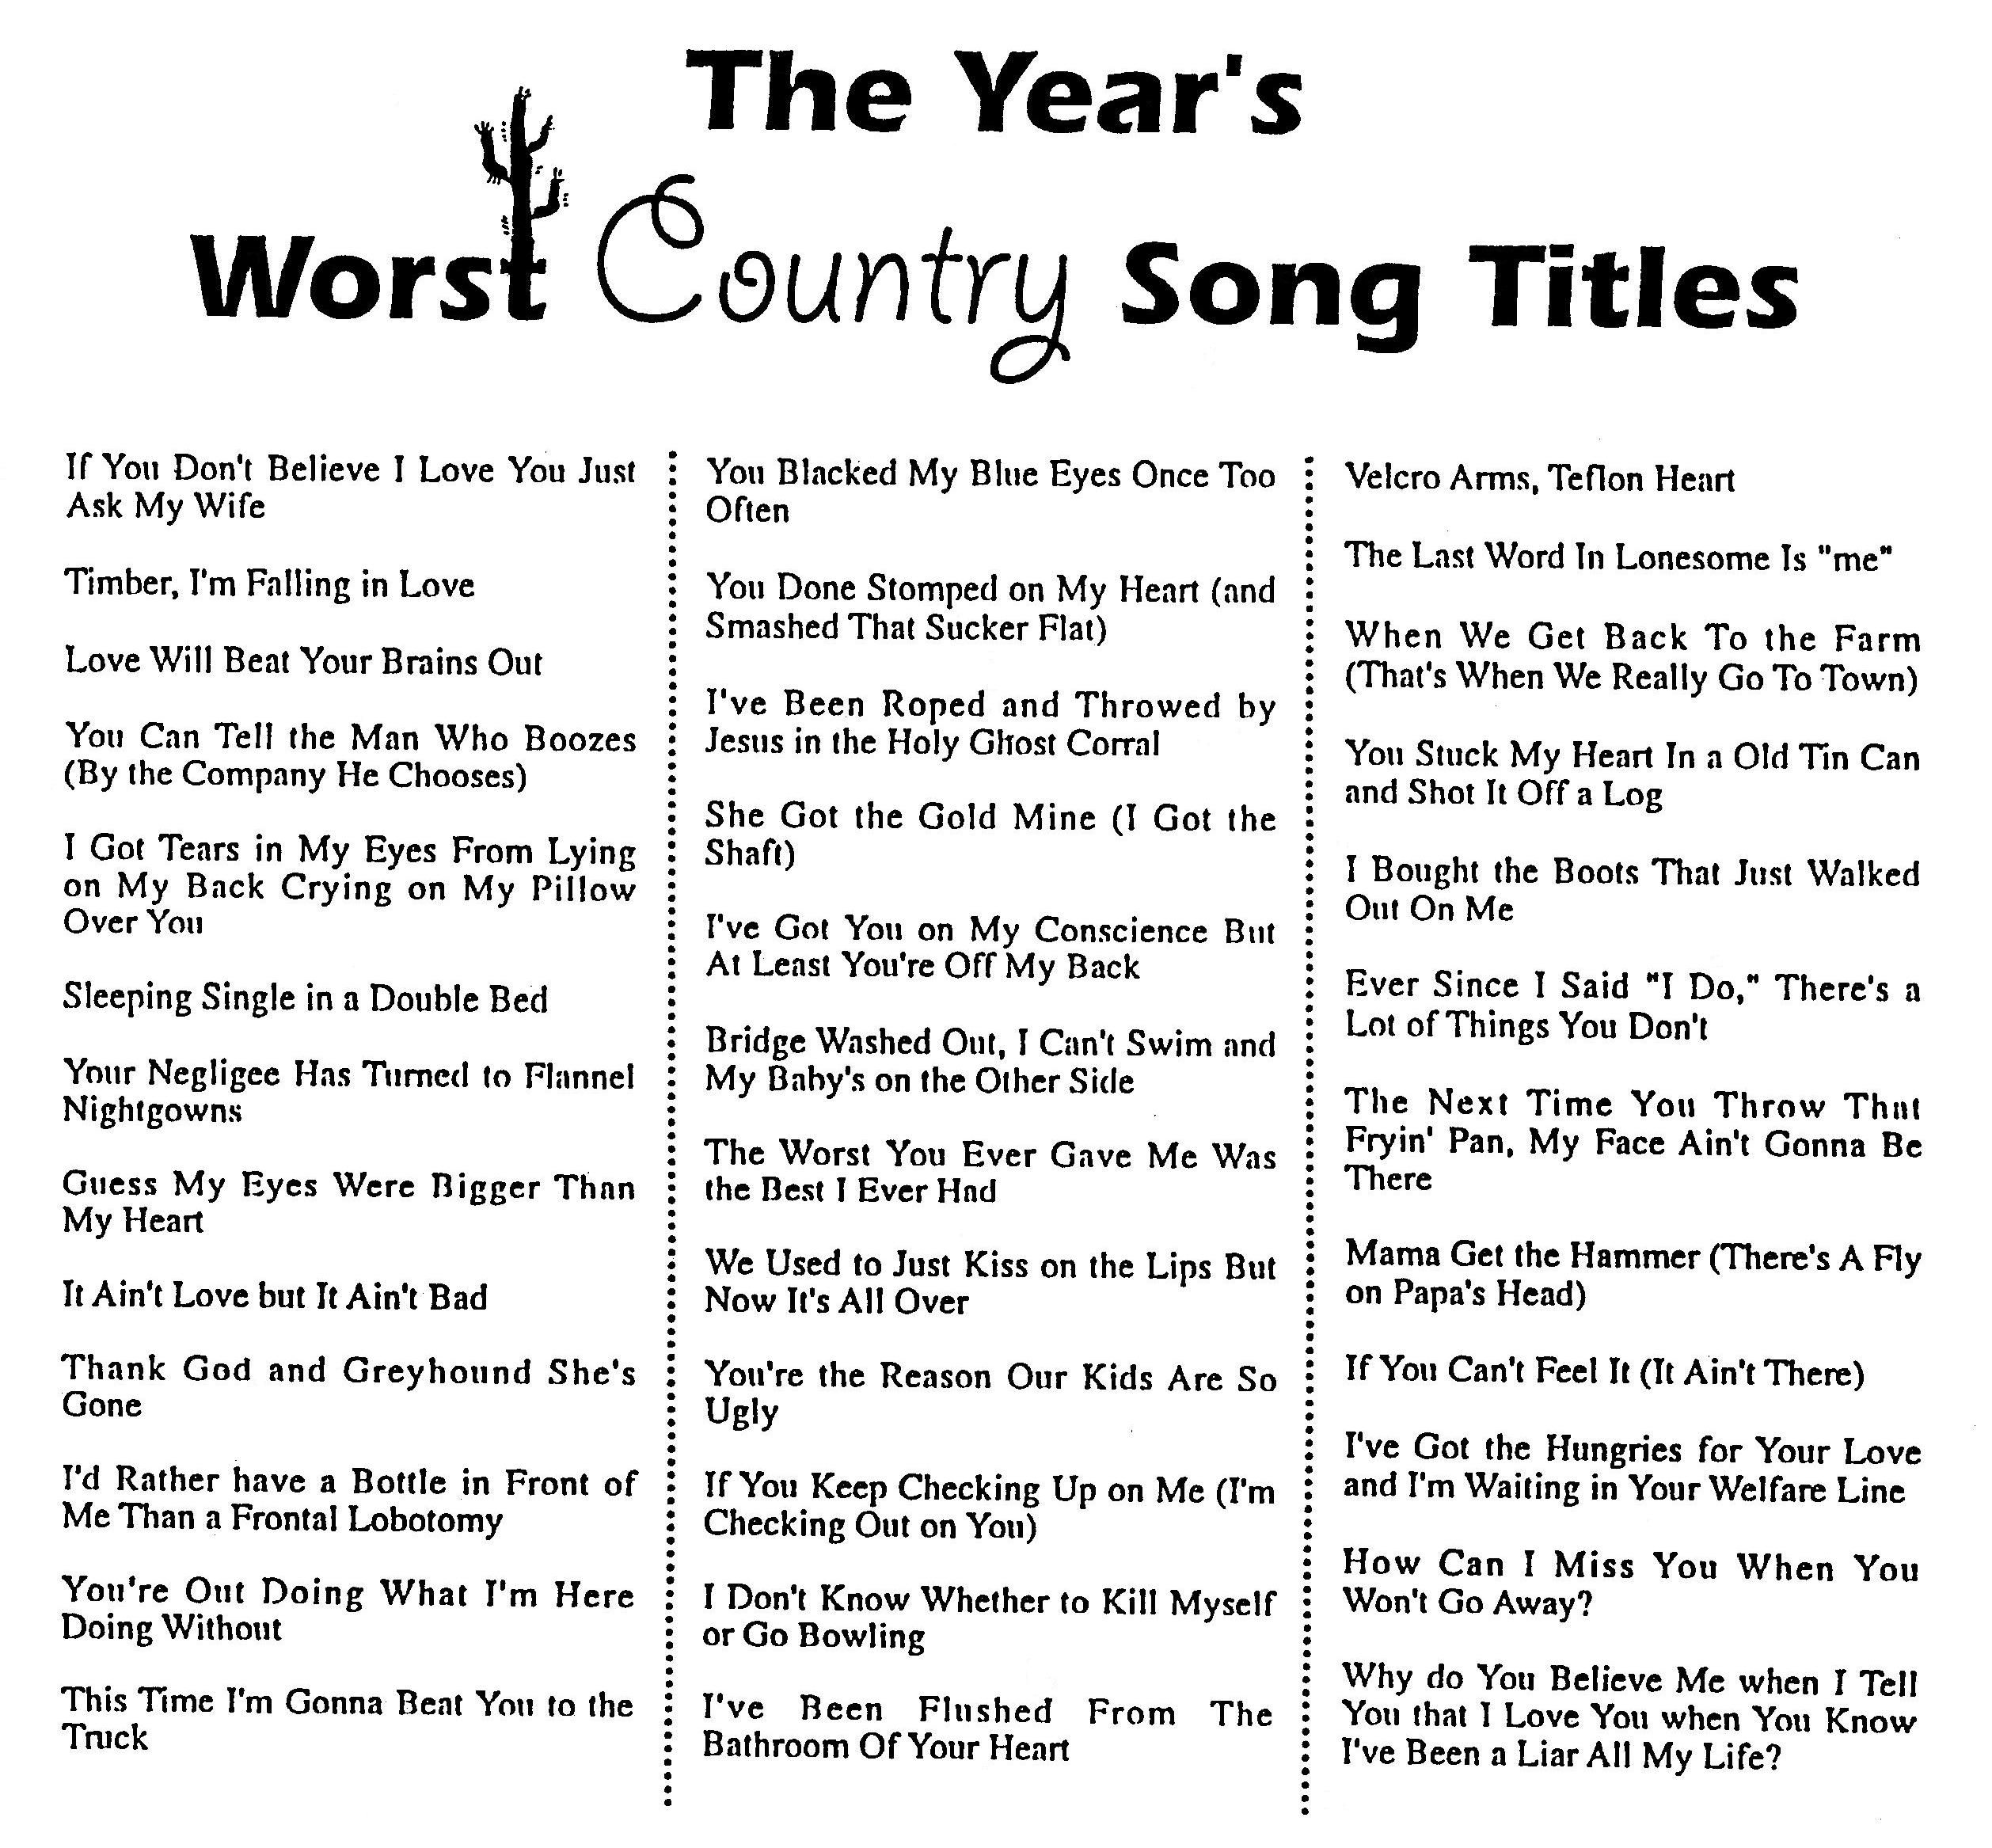 how to find song titles by sound